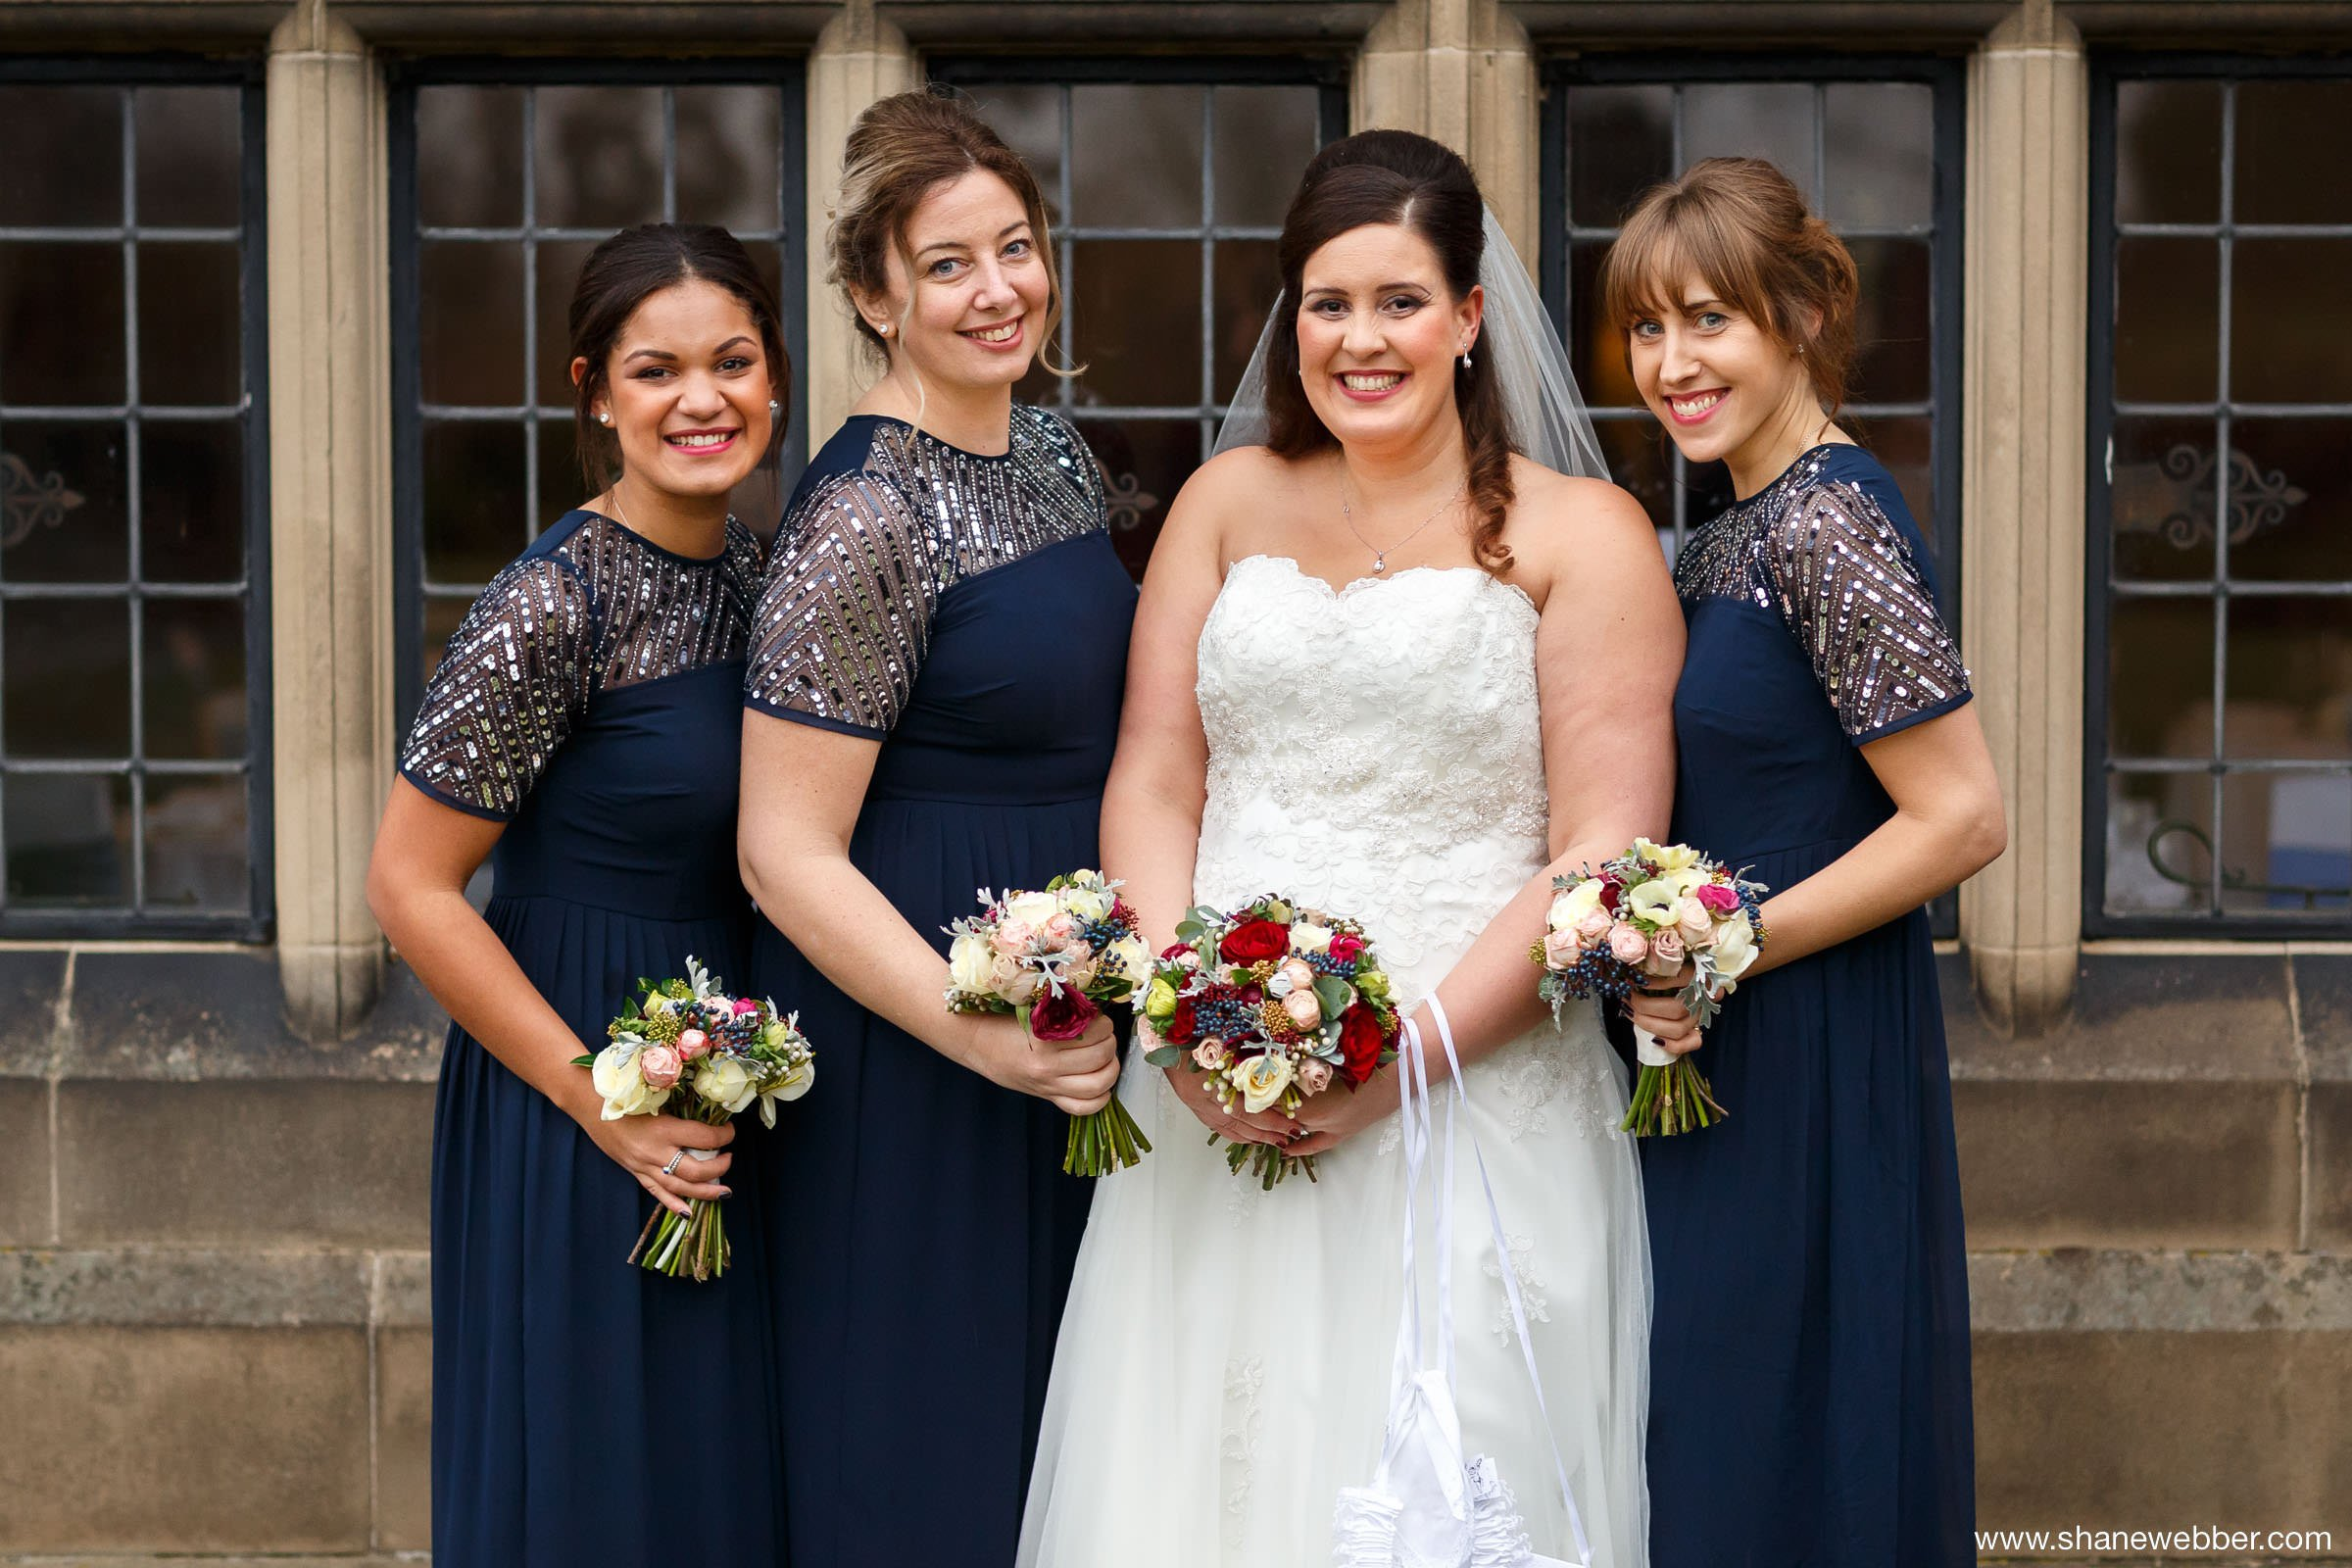 image of bride and bridesmaids